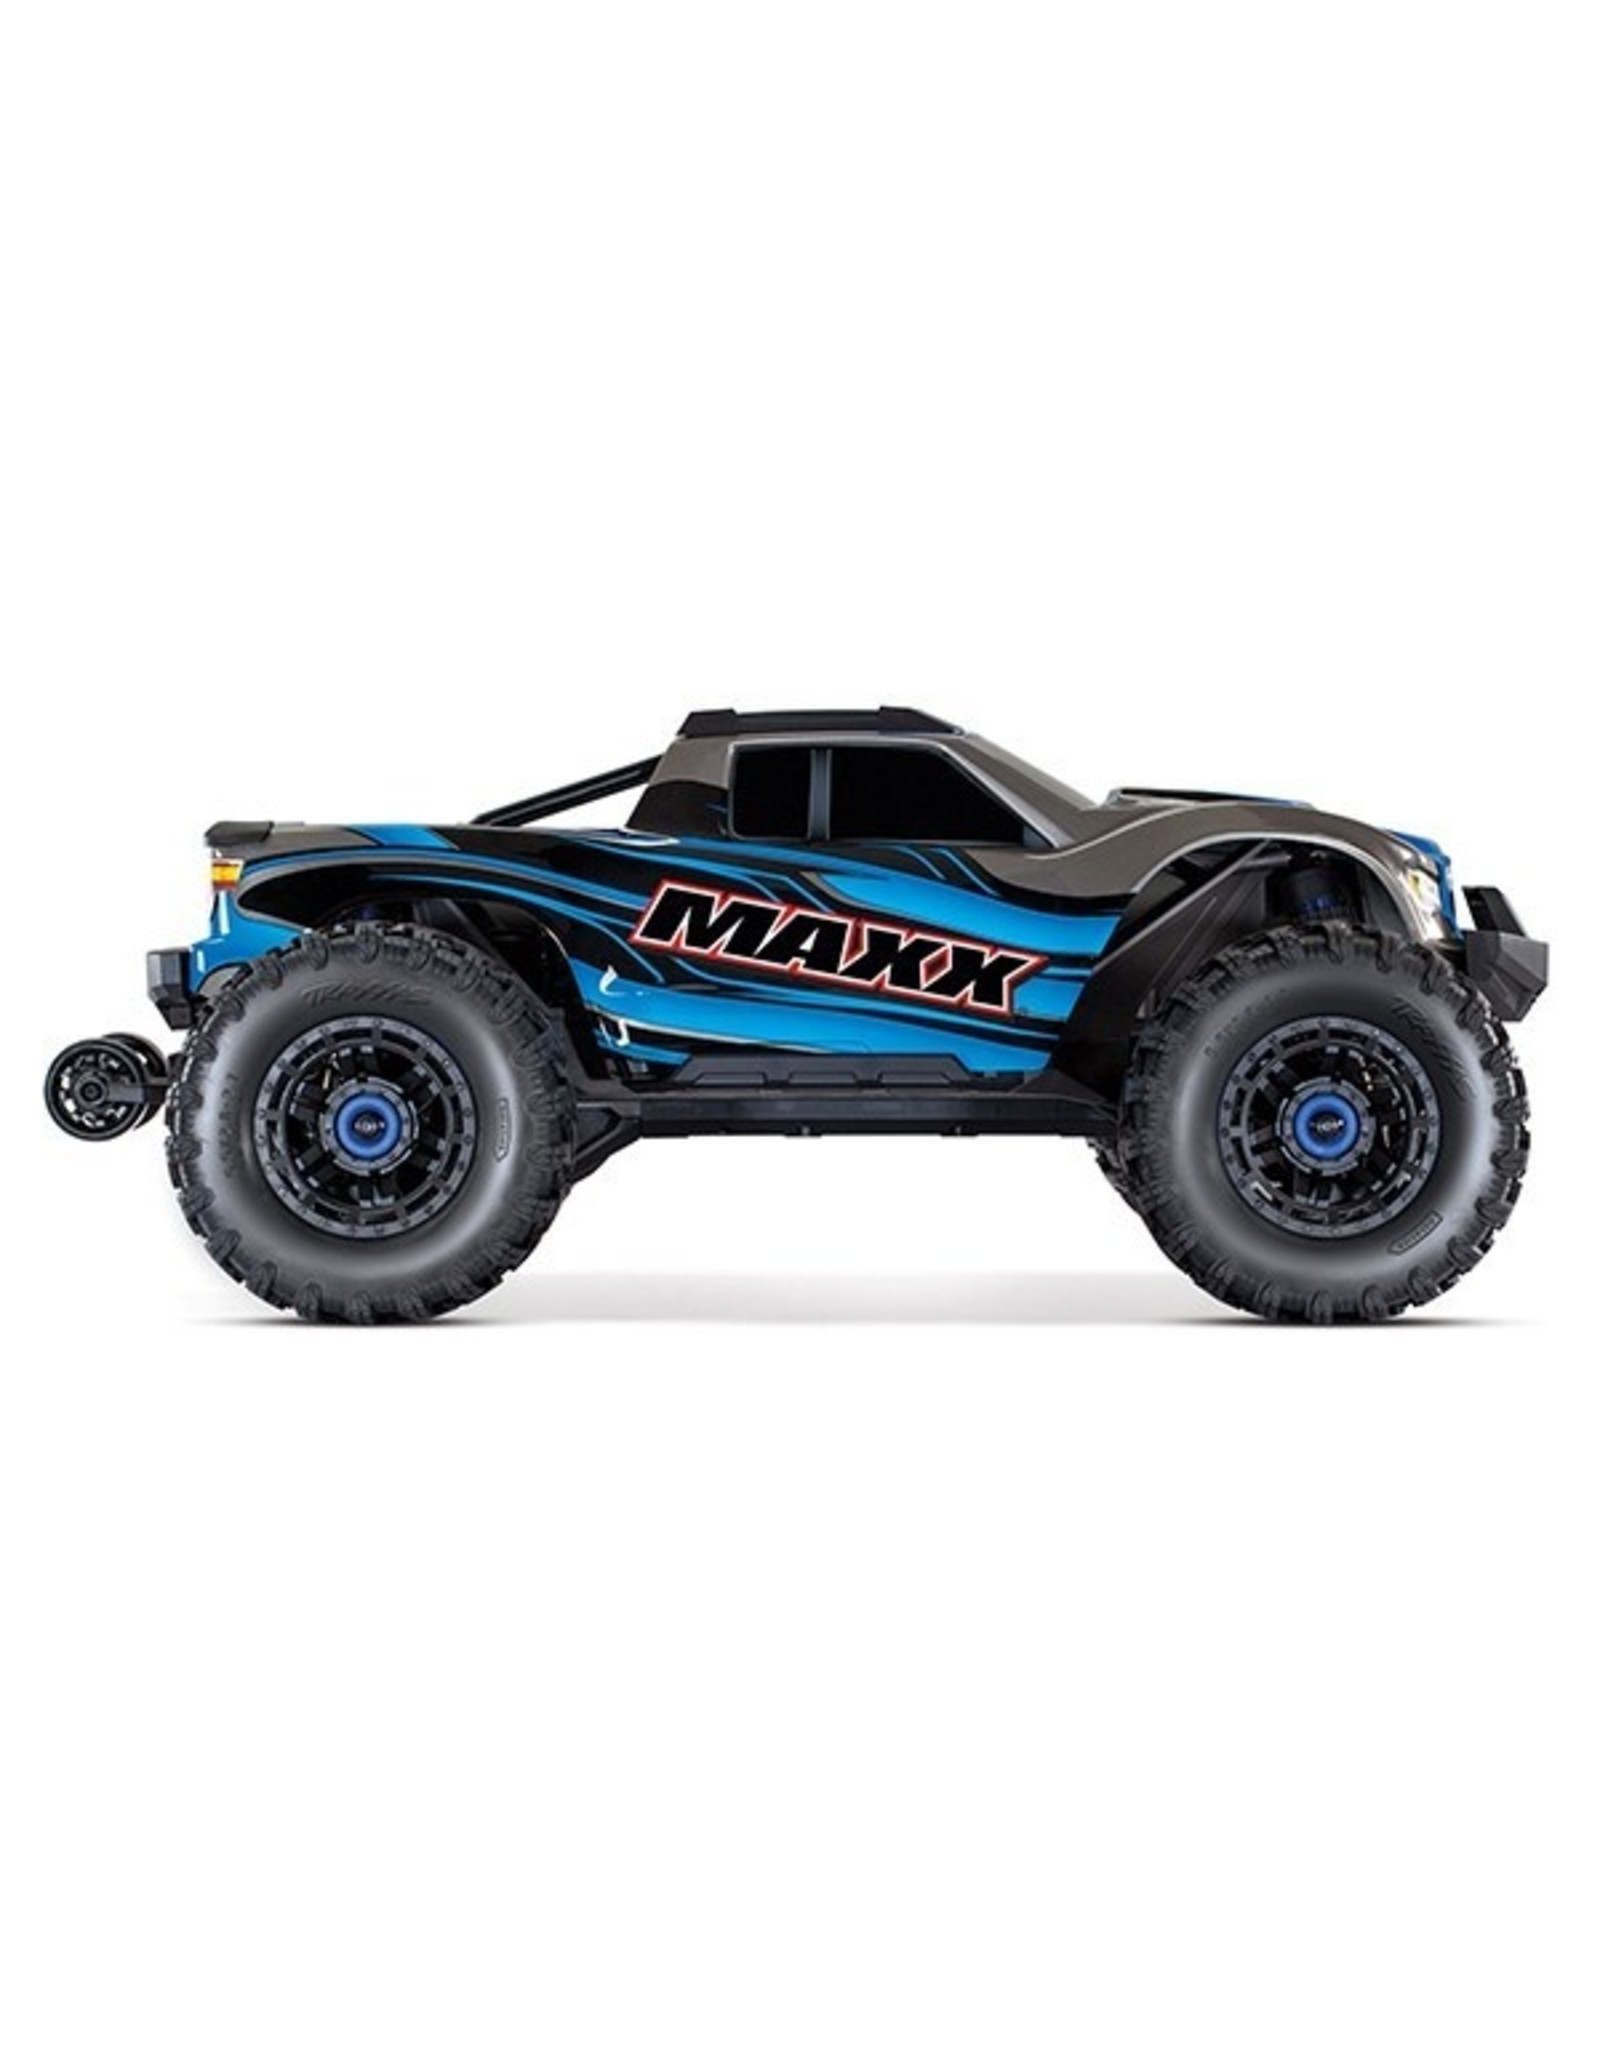 Traxxas Maxx: 1/10 4WD 4S-Capable Brushless Truck (BLUE)(89076-4)